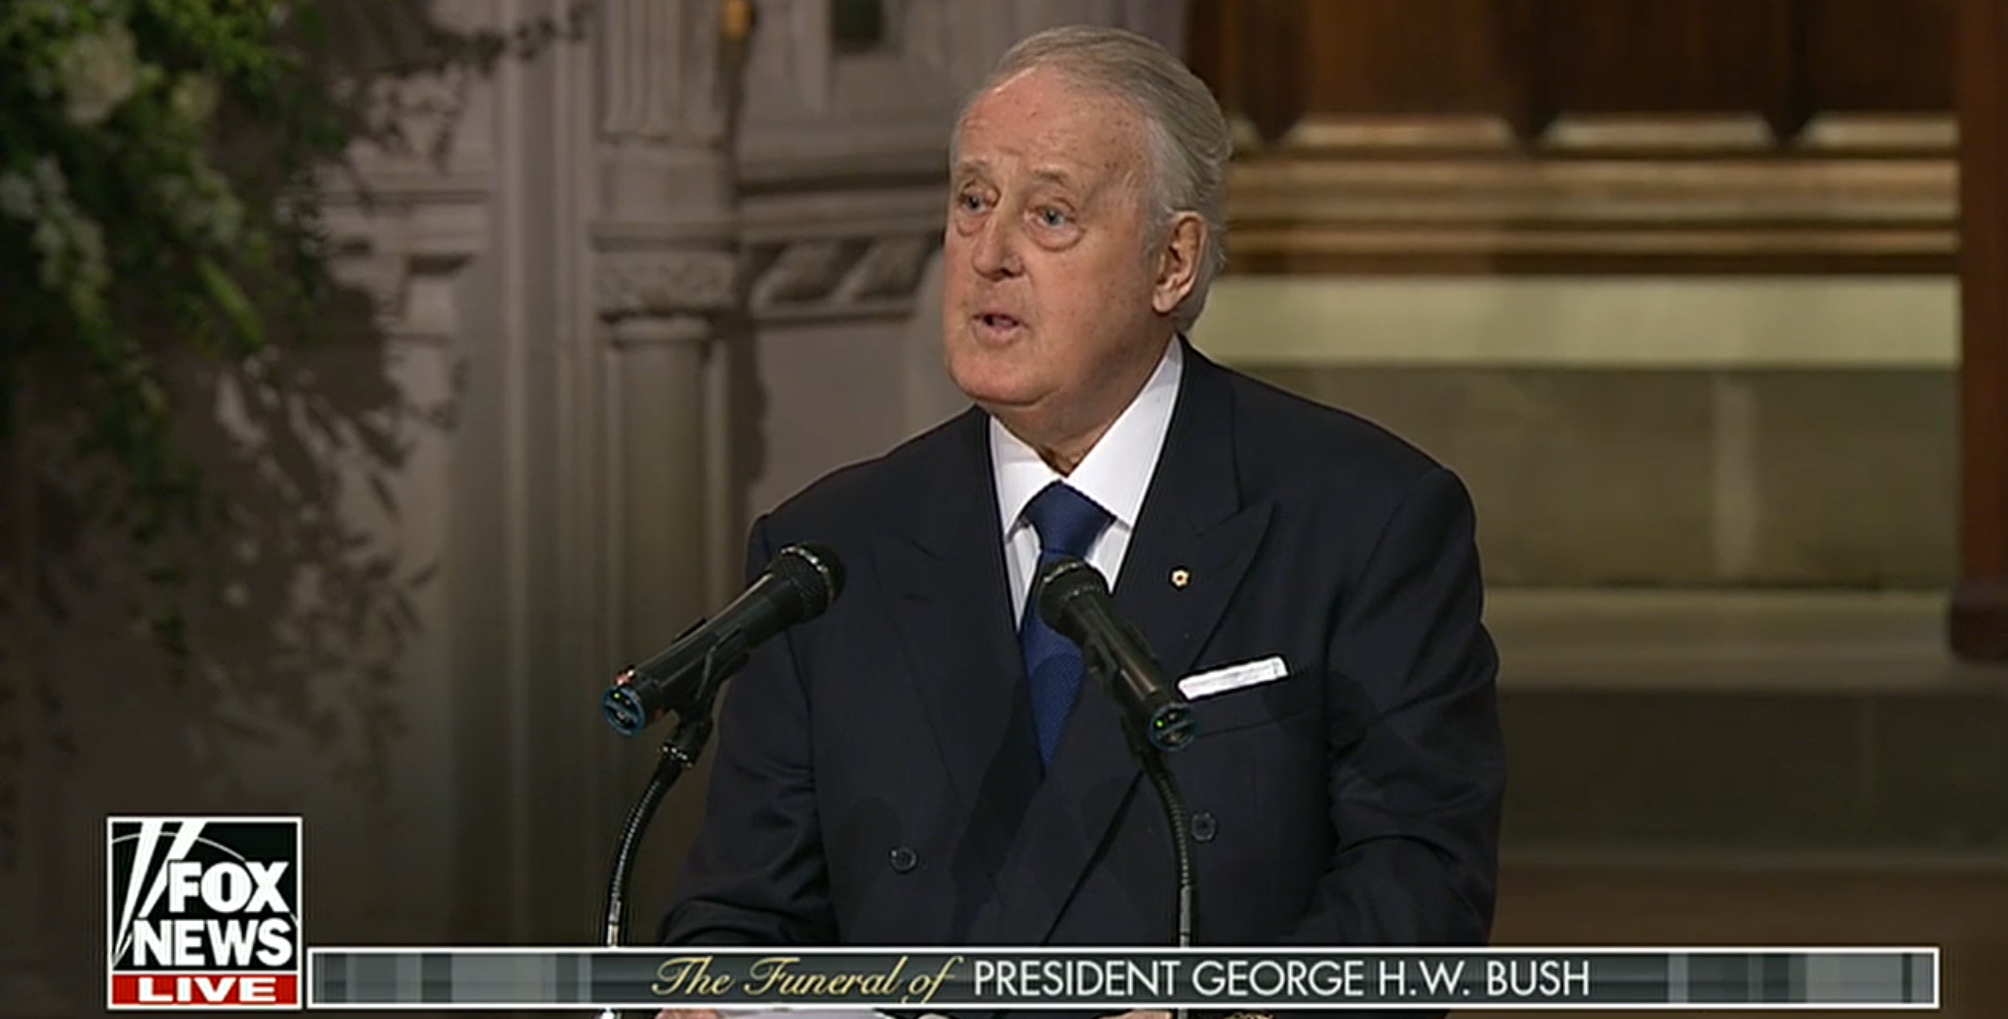 Former Canadian Prime Minister Brian Mulroney delivers a eulogy at the state funeral for George H.W. Bush, Dec. 5, 2018. Fox News screencapture